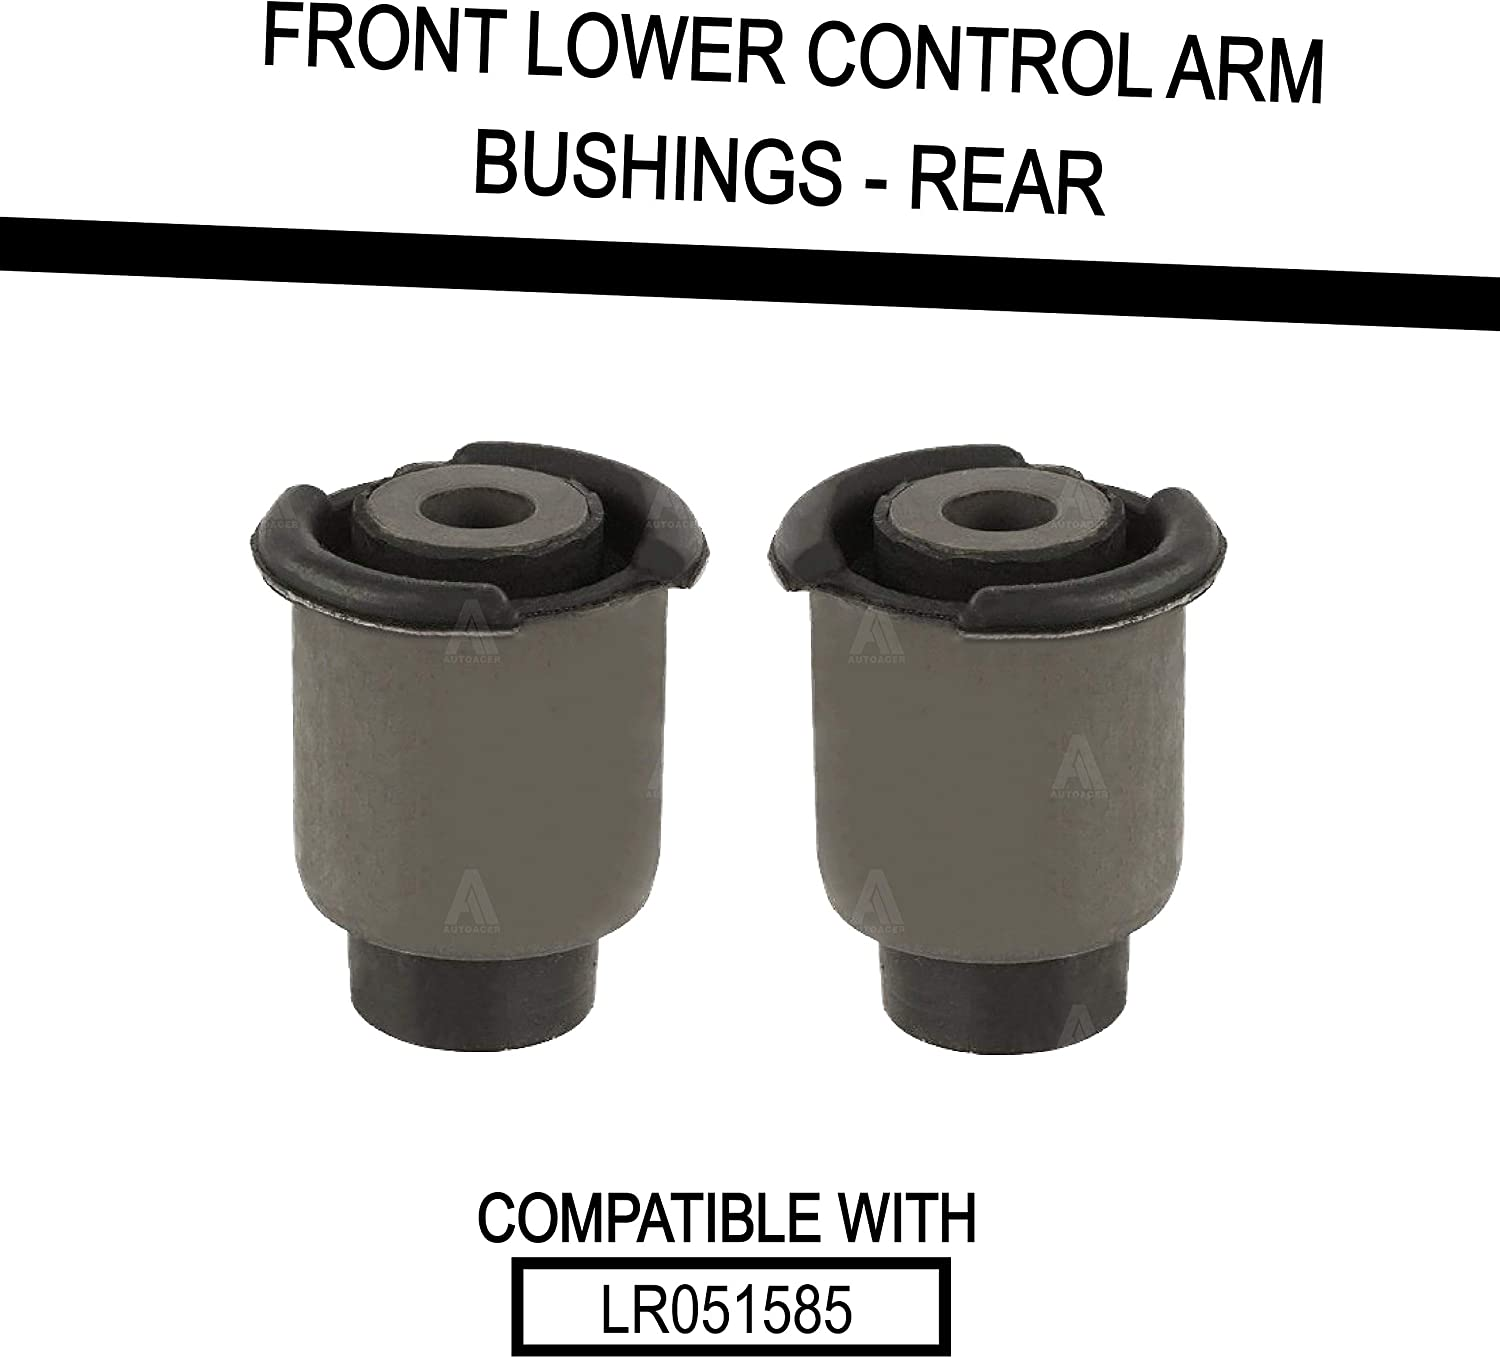 8 Piece Front Upper /& Lower Control Arm Bushing Kit Compatible with Land Range Rover Sport 2005-2013 AUTOACER